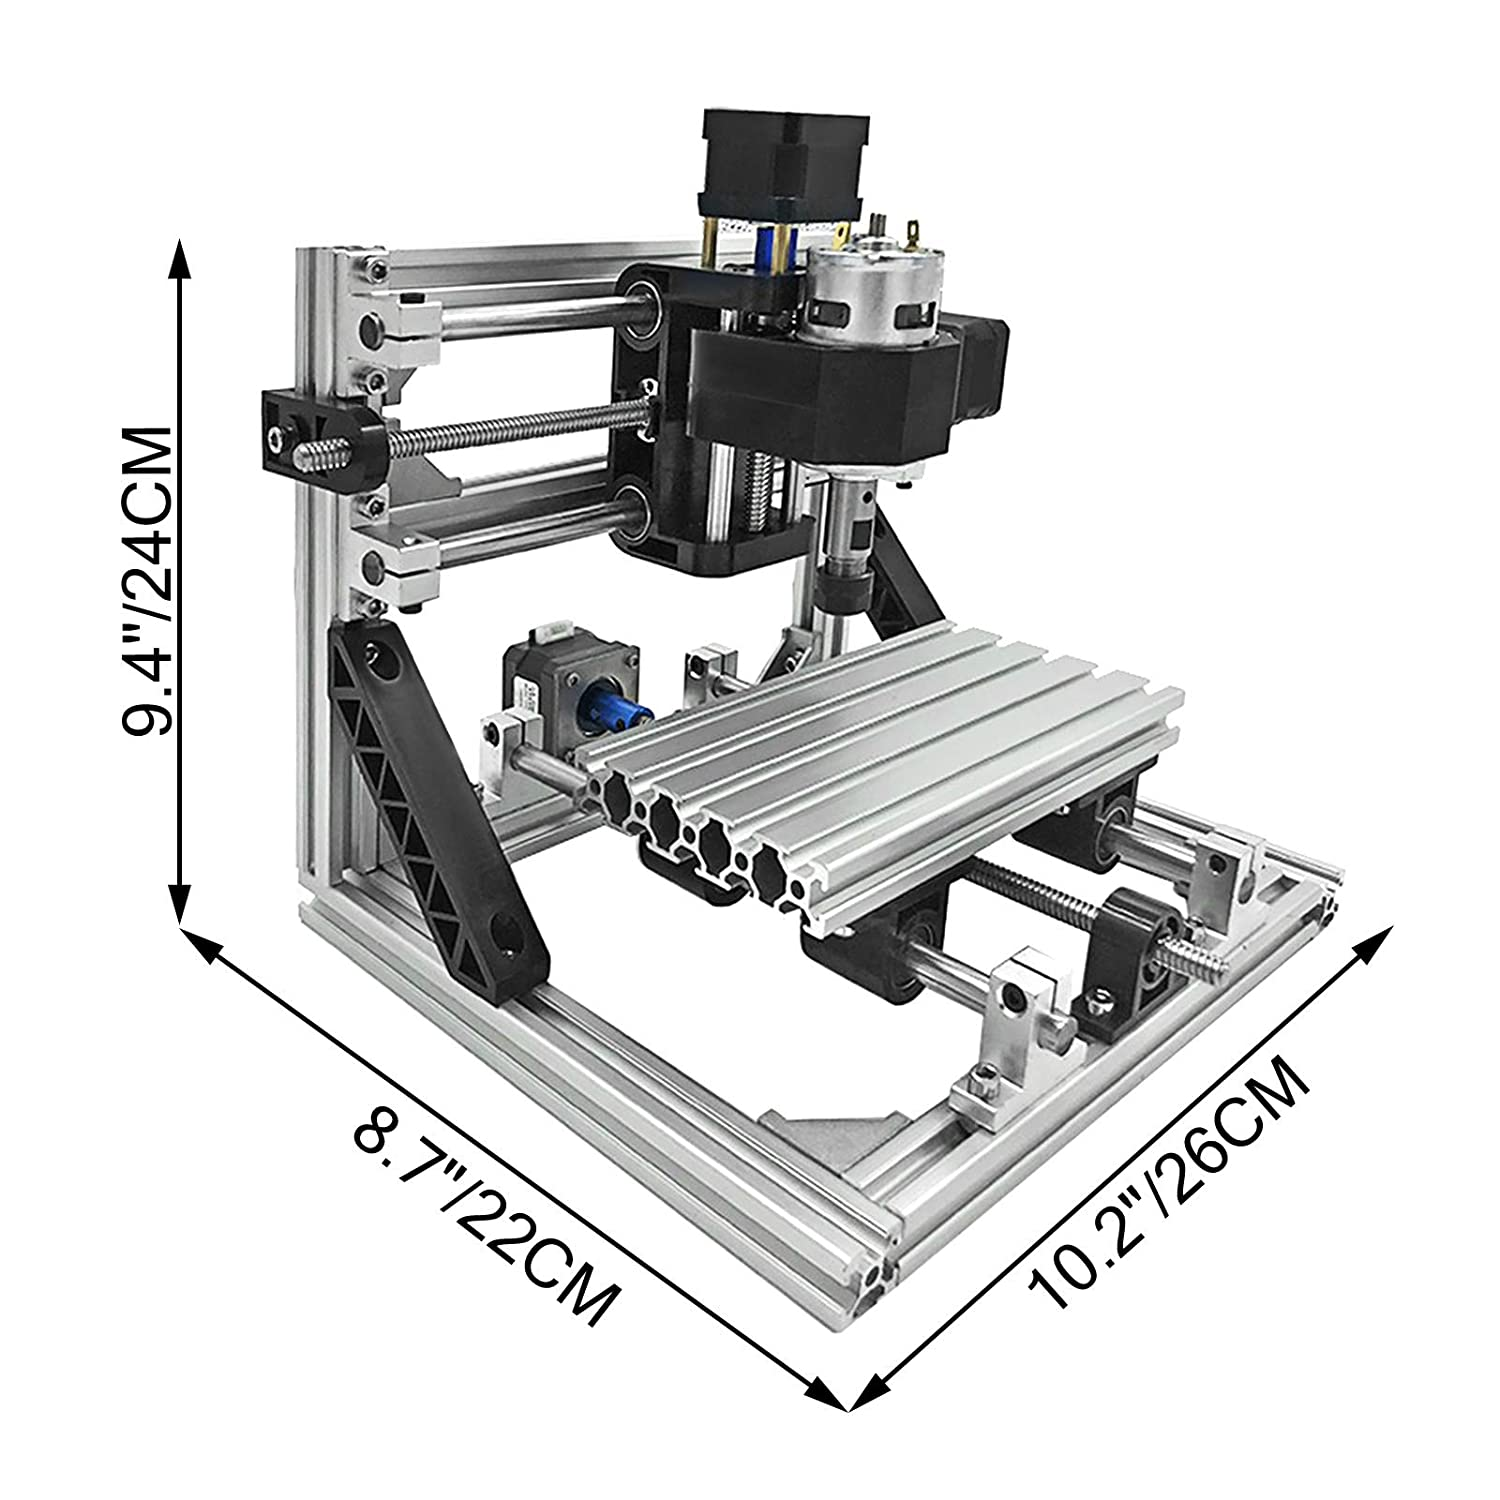 Mophorn CNC Machine 1610 Grbl Control Cnc Router Kit 3 Axis Pcb Laser Engraver 160X100X40MM With 500mW Blue Light Laser Module And Table Lamp